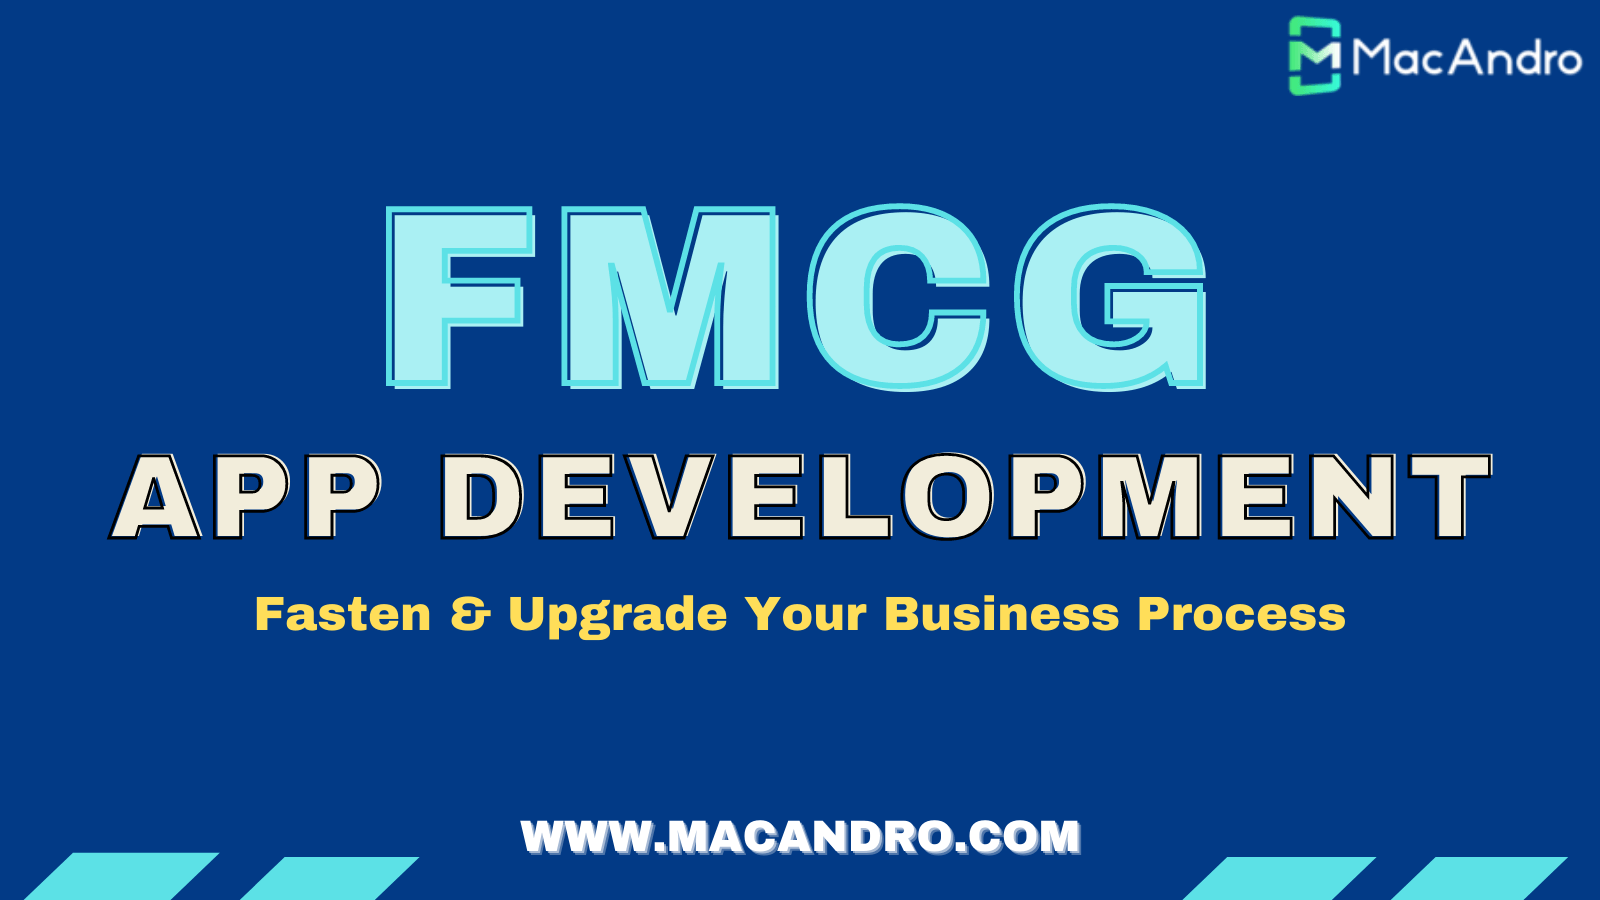 Macandro Extends Mobile App Development Solutions For FMCG Industry